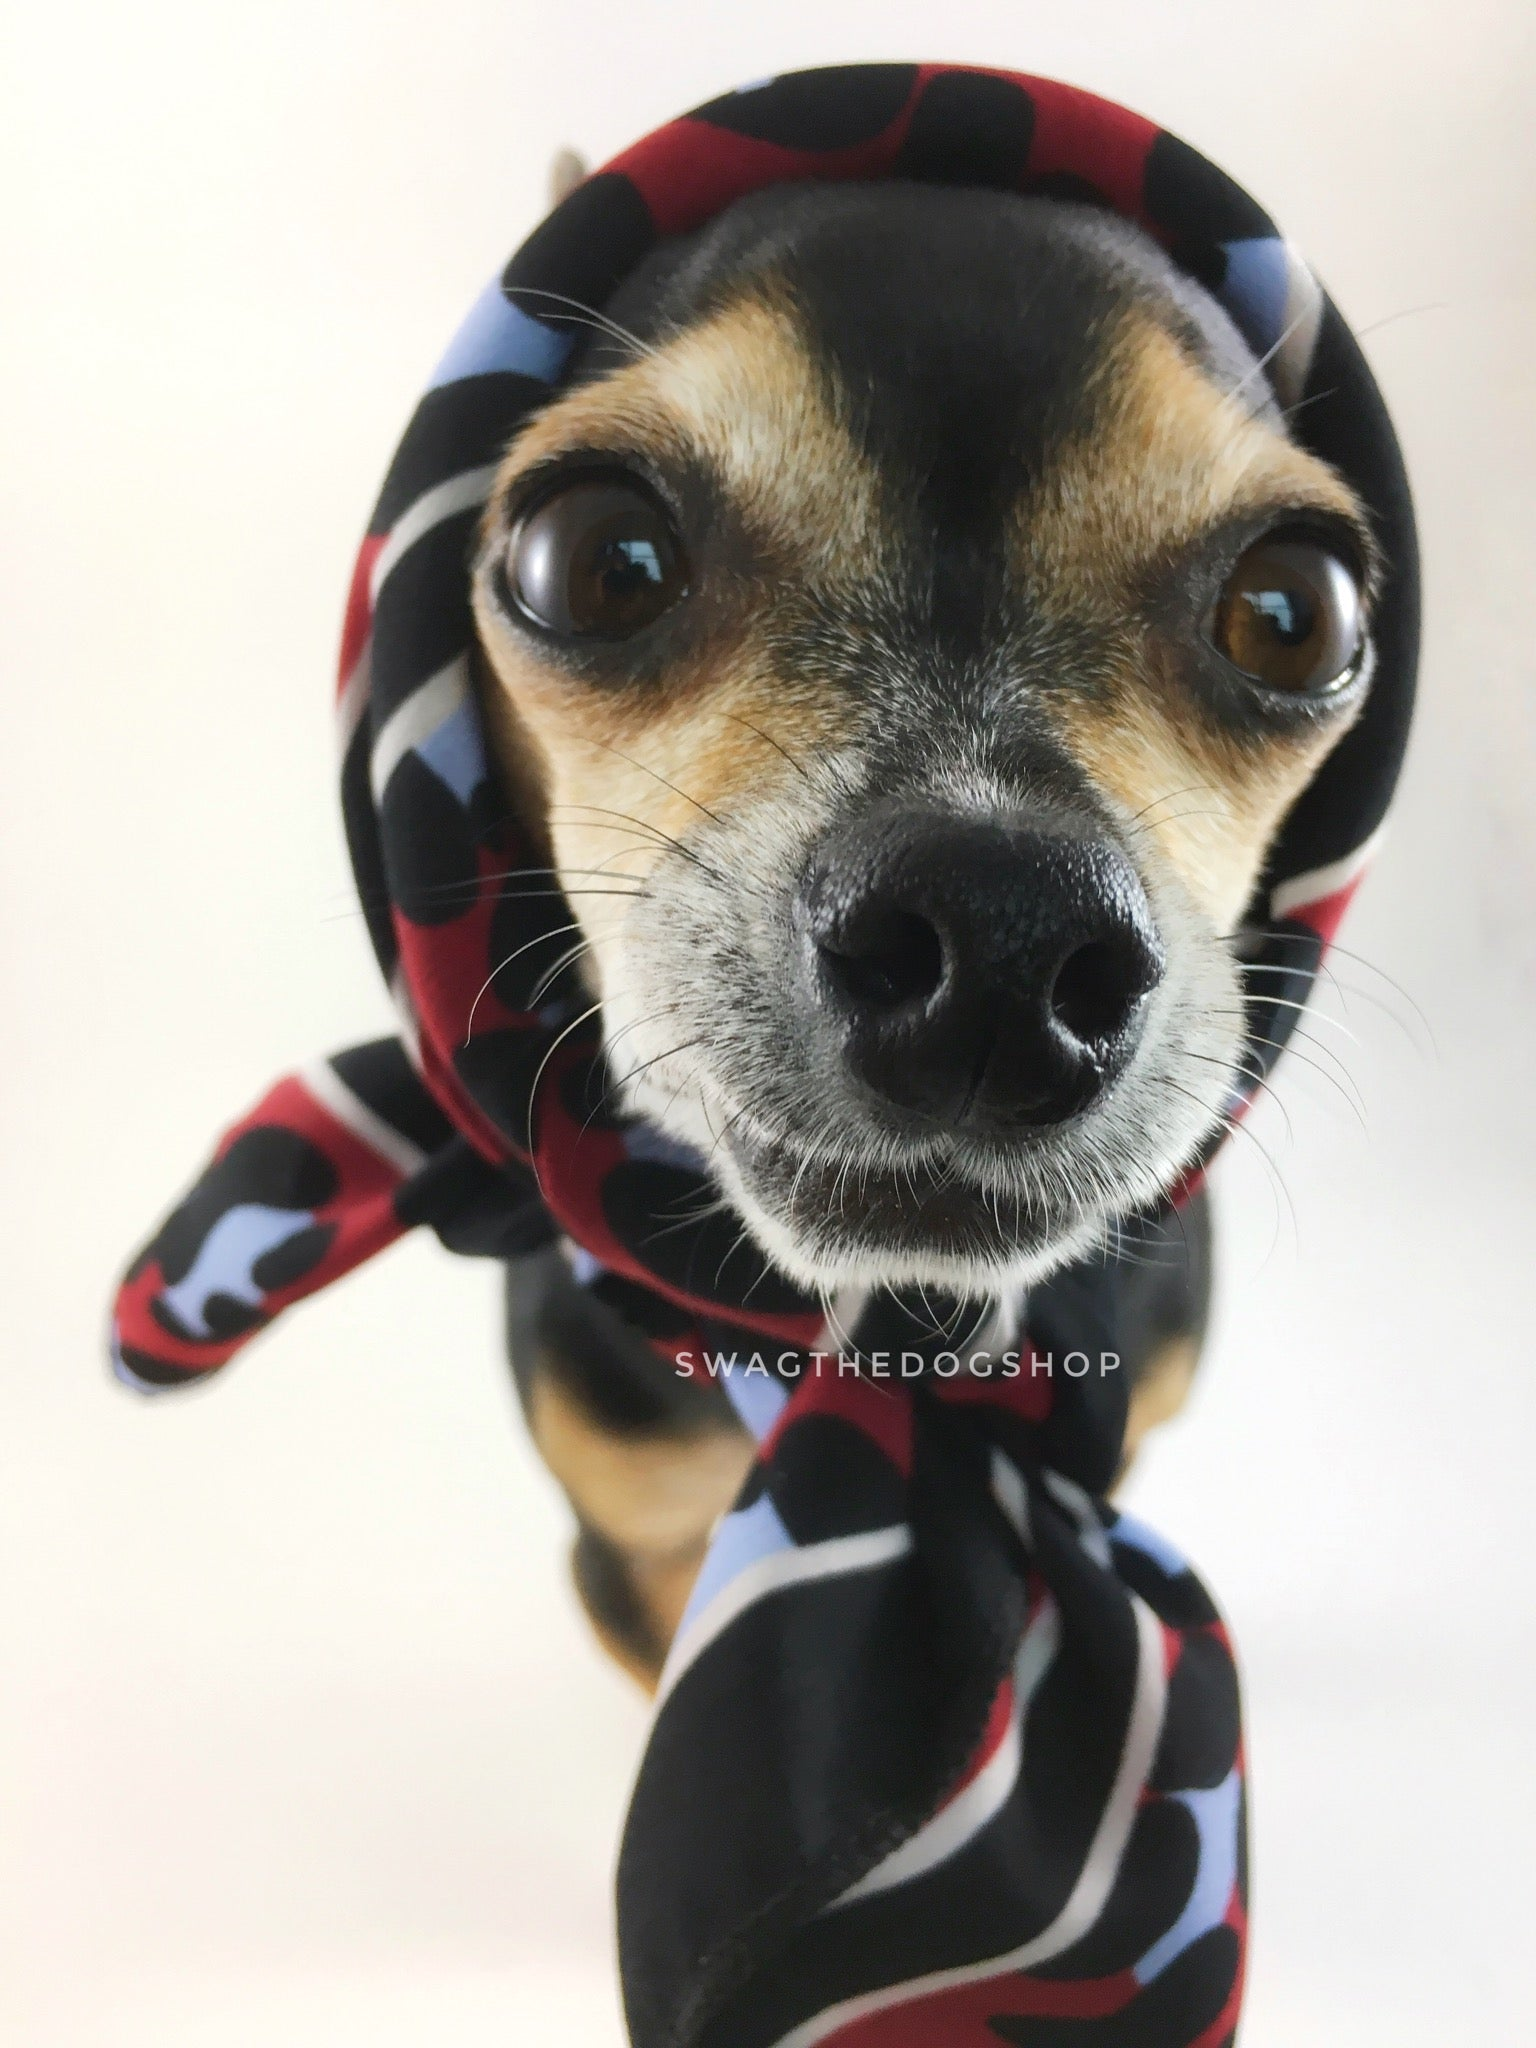 Leopard Burgundy Swagdana Scarf - Bust of Cute Chihuahua Wearing Swagdana Scarf as Headscarf. Dog Bandana. Dog Scarf.